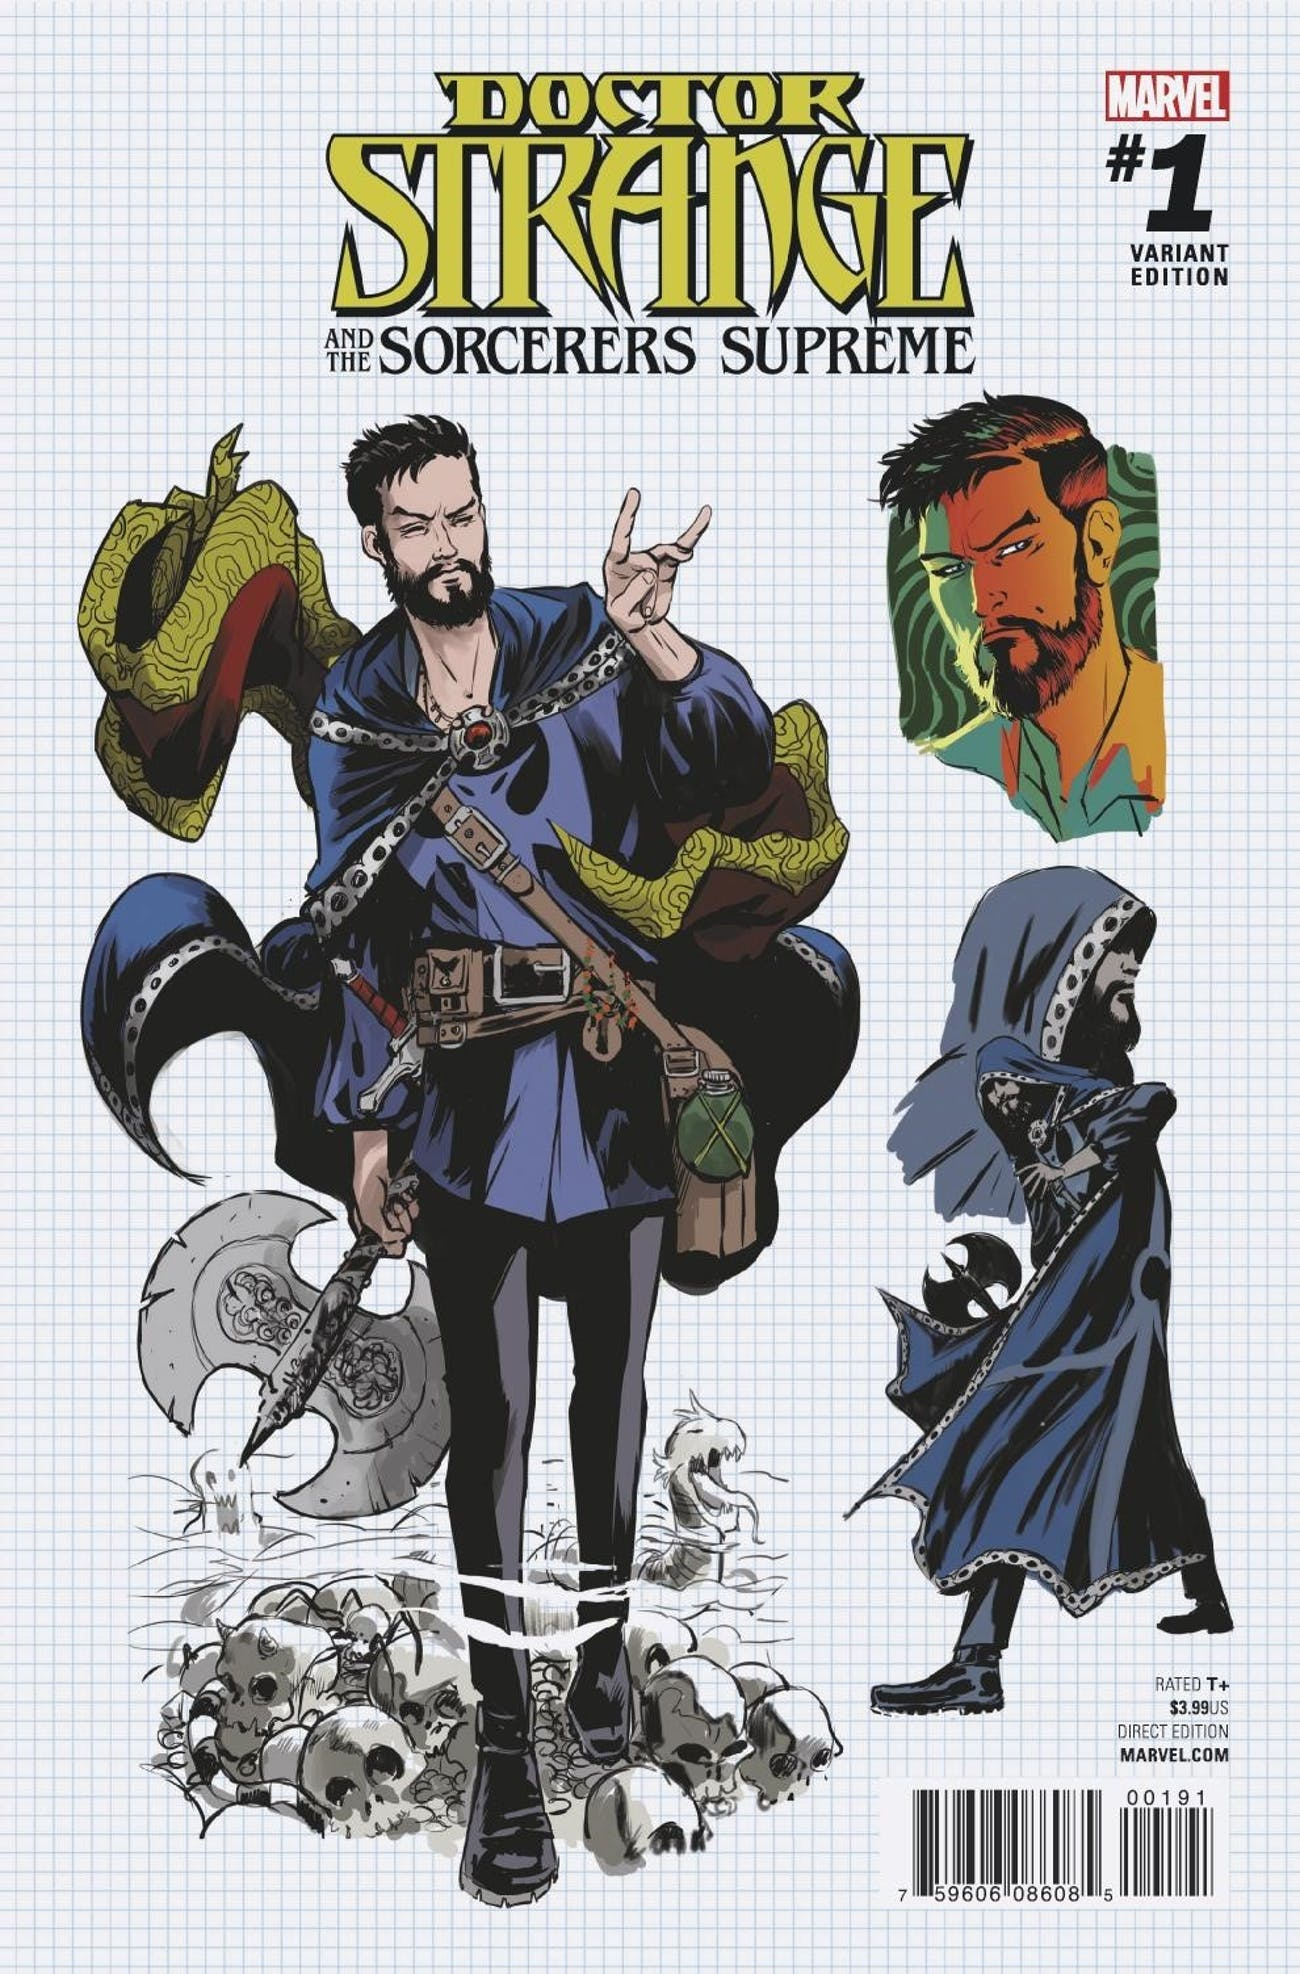 Variant cover for Marvel Comics' Doctor Strange and the Sorcerer Supremes